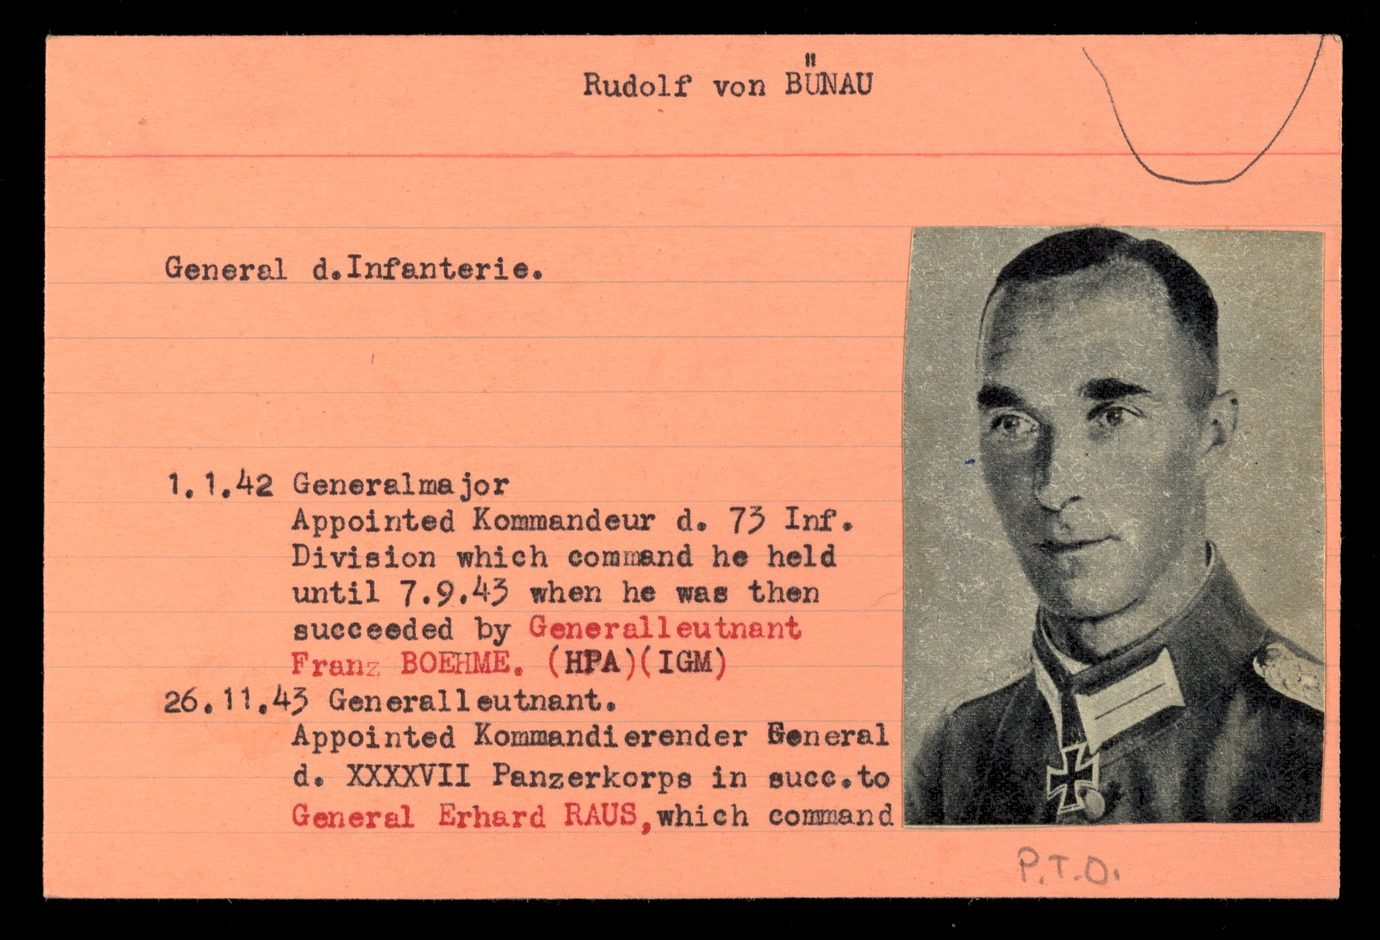 Index card for Rudolf von Bünau complete with passport photograph and biography about his career